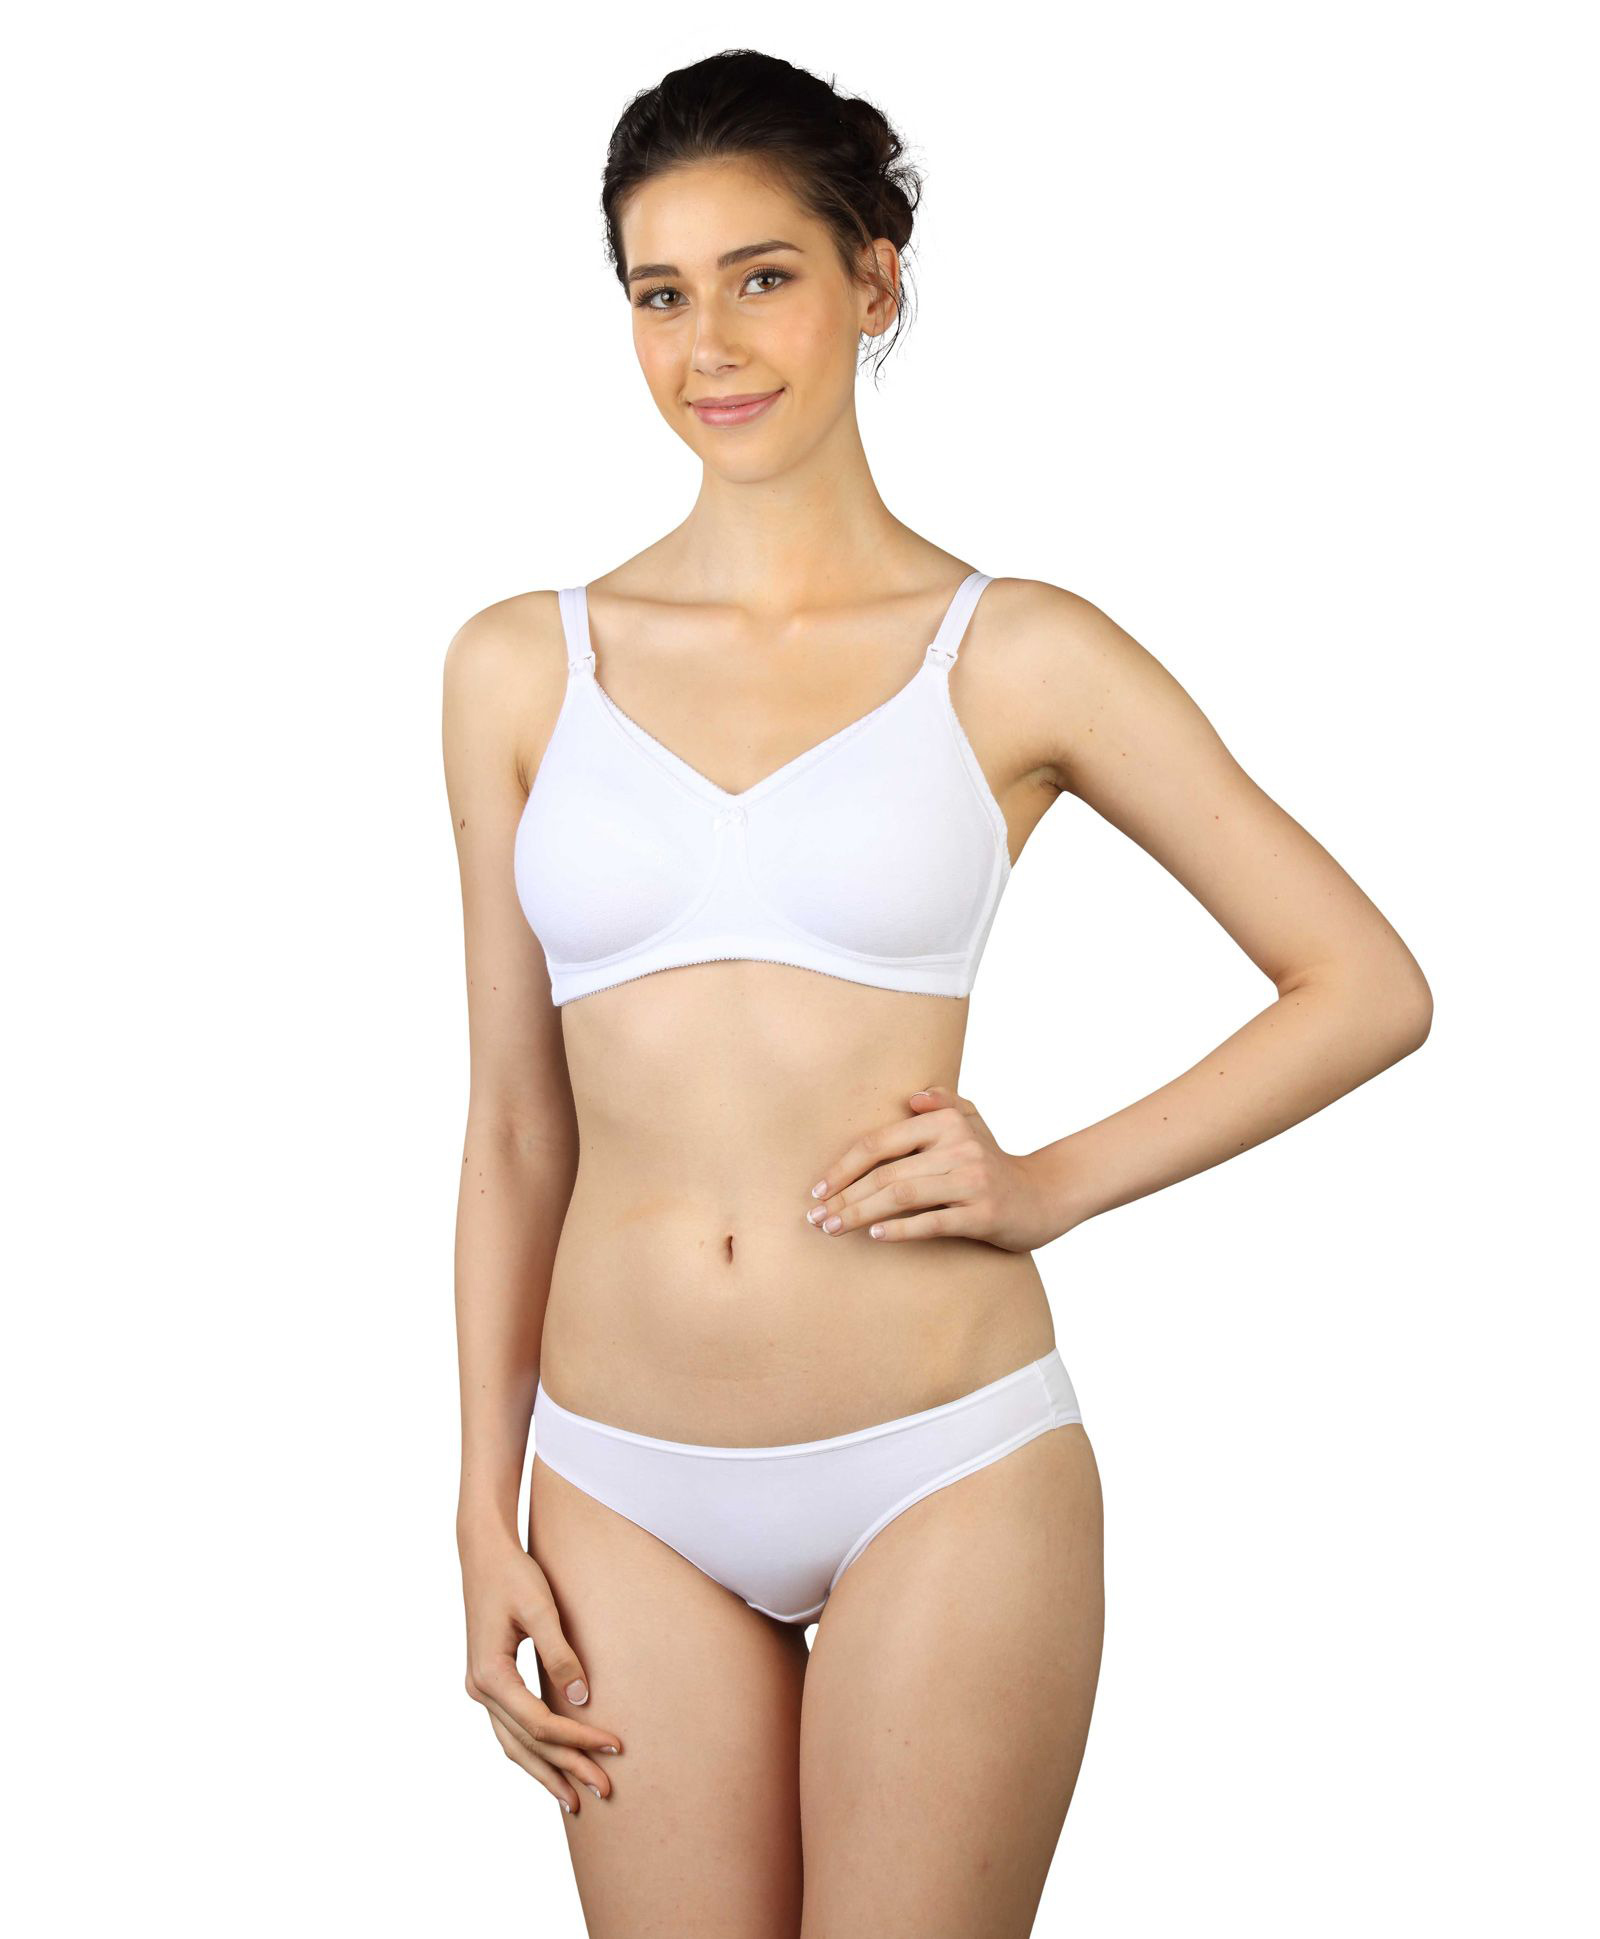 161e47d4e Triumph Mamabel Nature Non Wired Maternity Bra White Online in ...